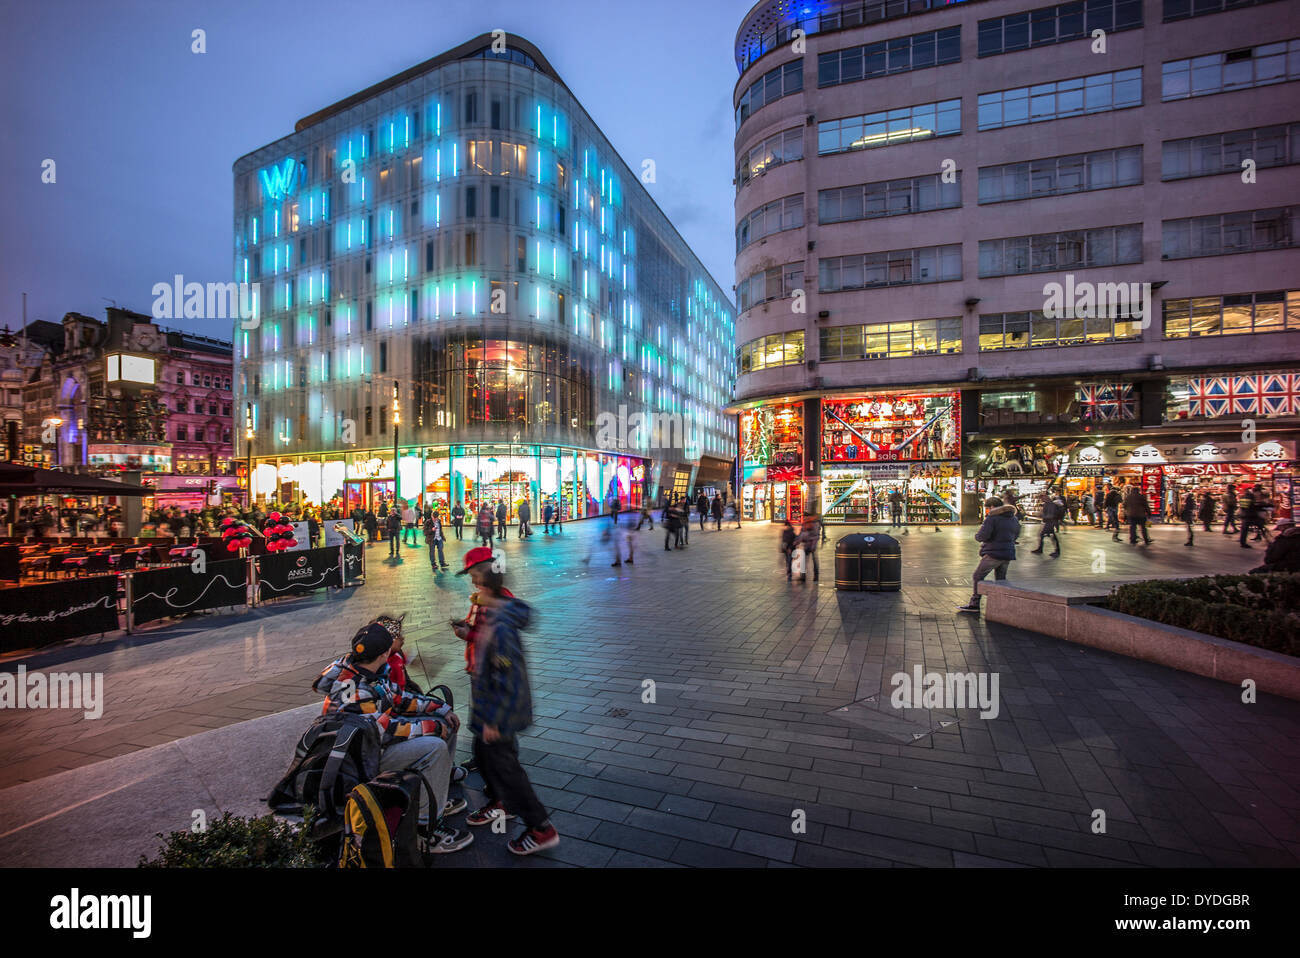 Leicester Square at dusk and the W Hotel. - Stock Image